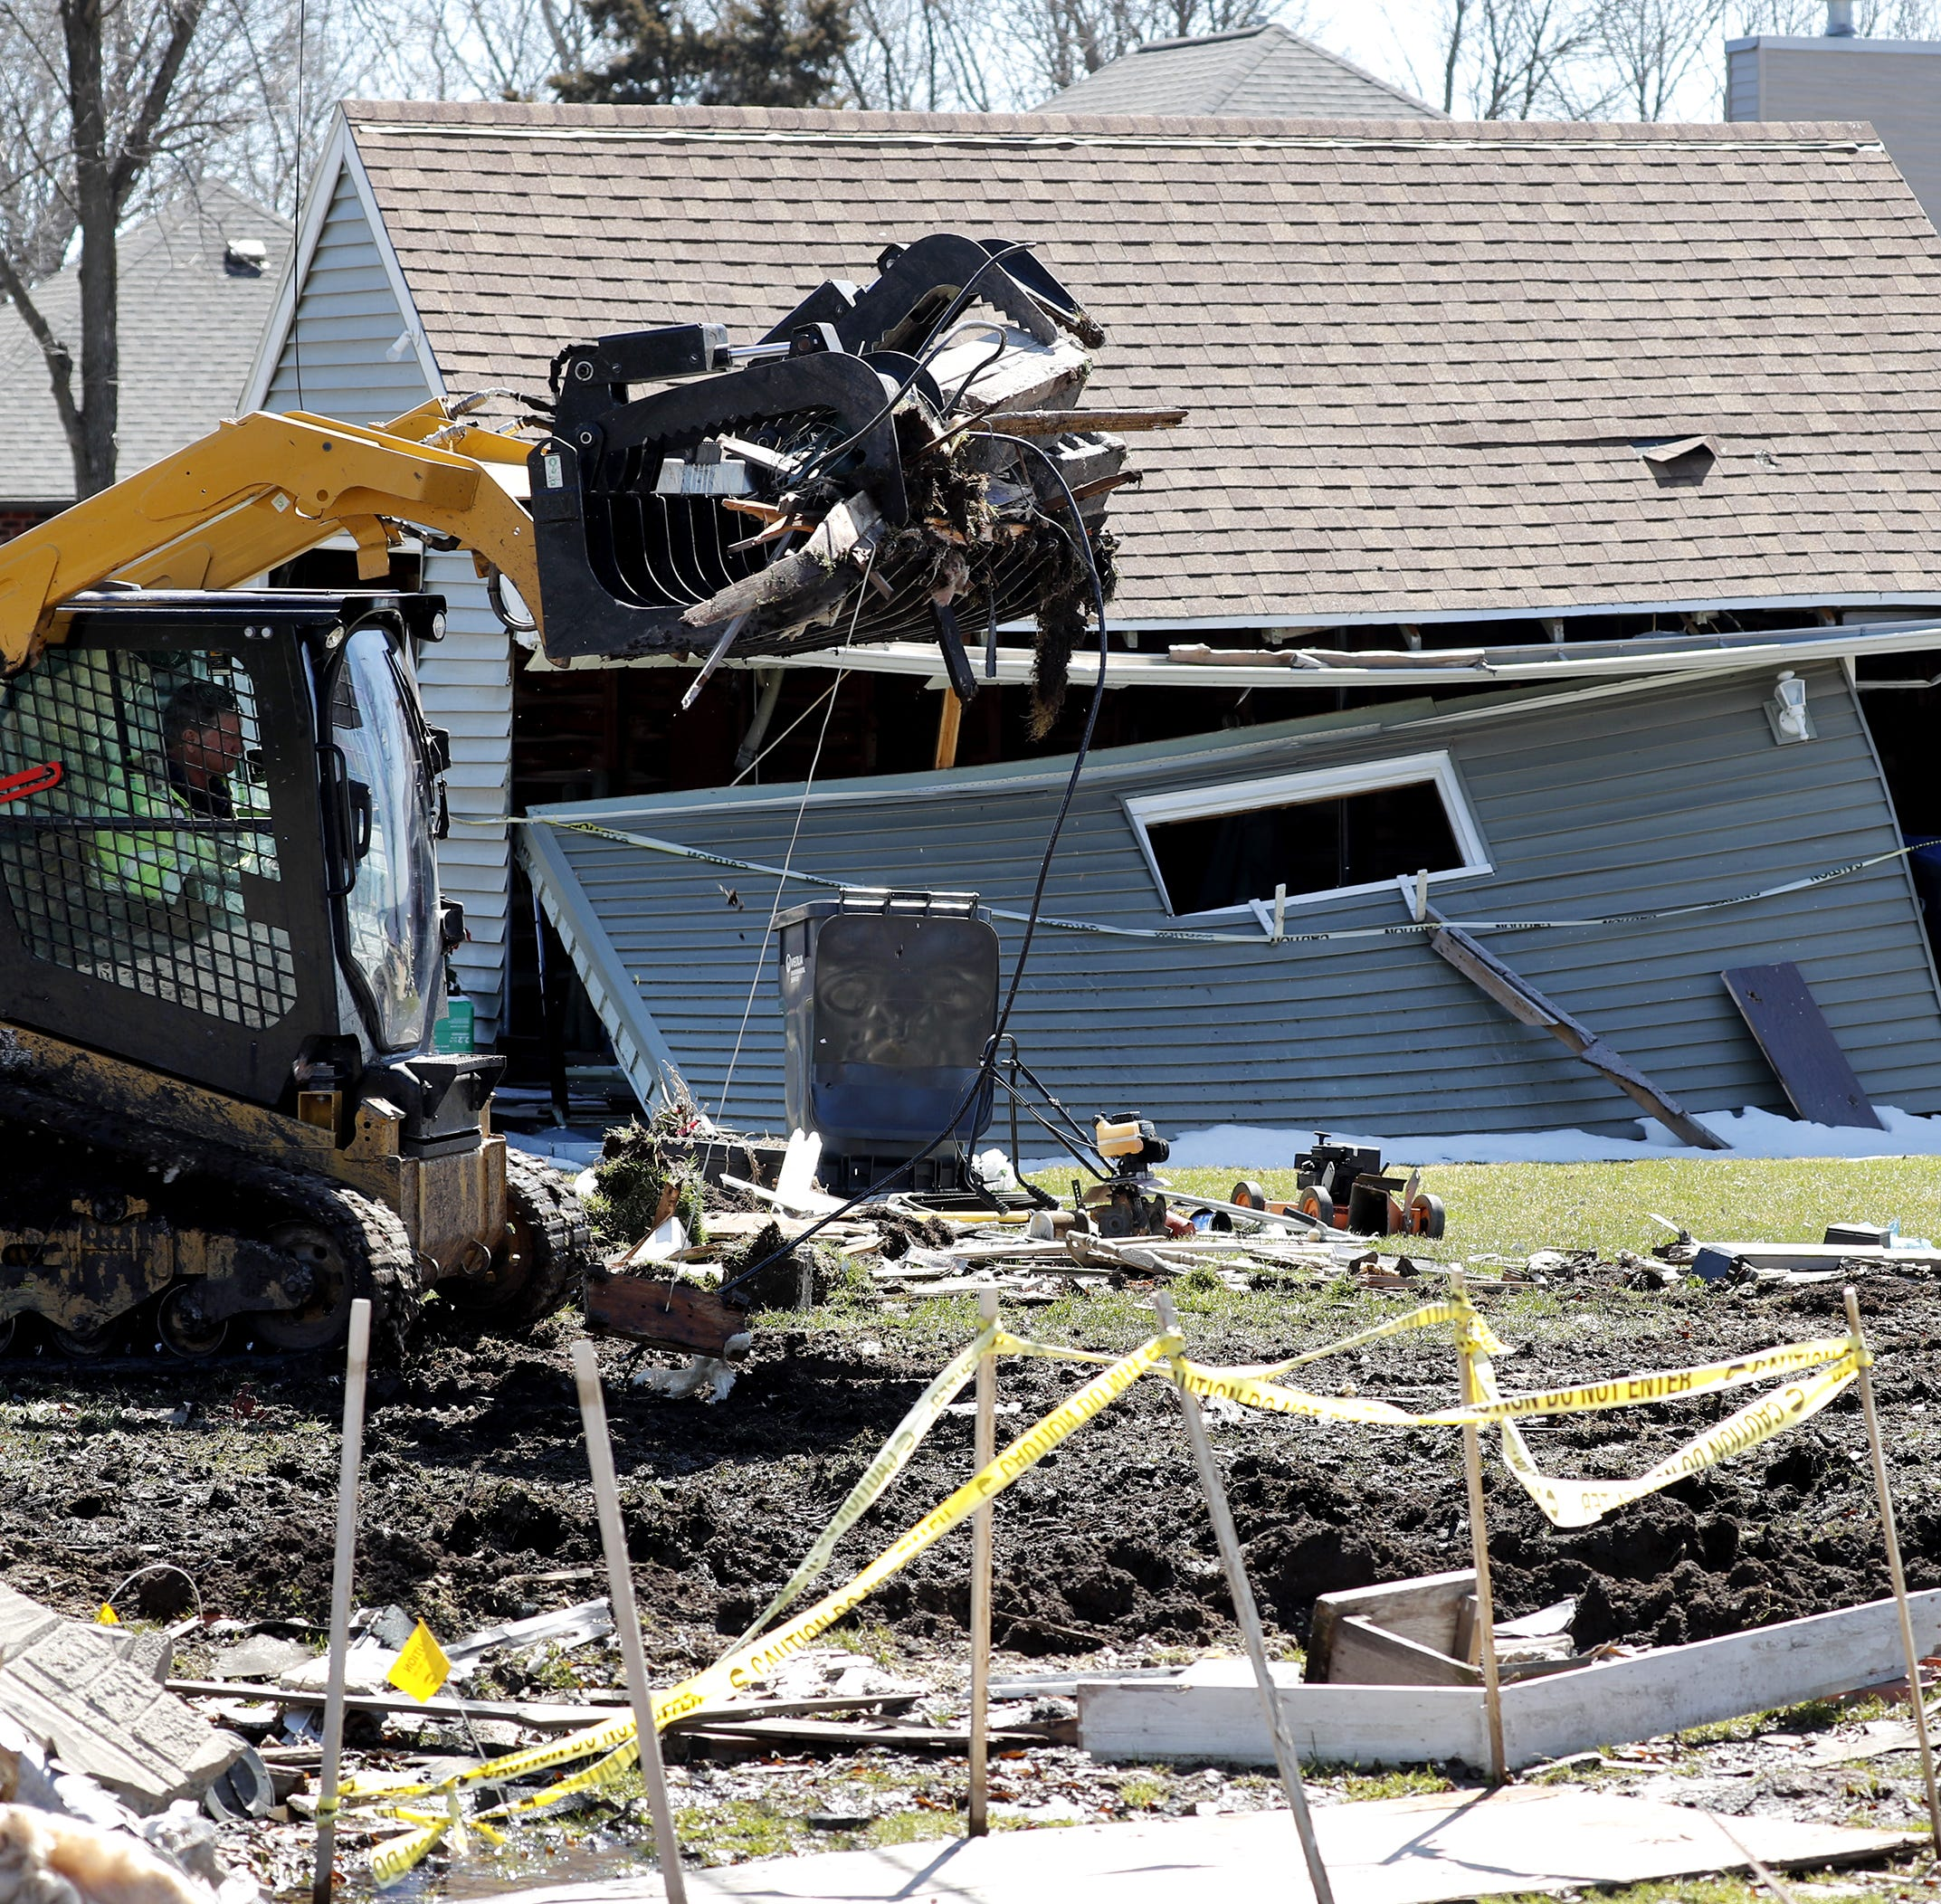 Cleanup of house explosion in Harrison begins under threat of fines